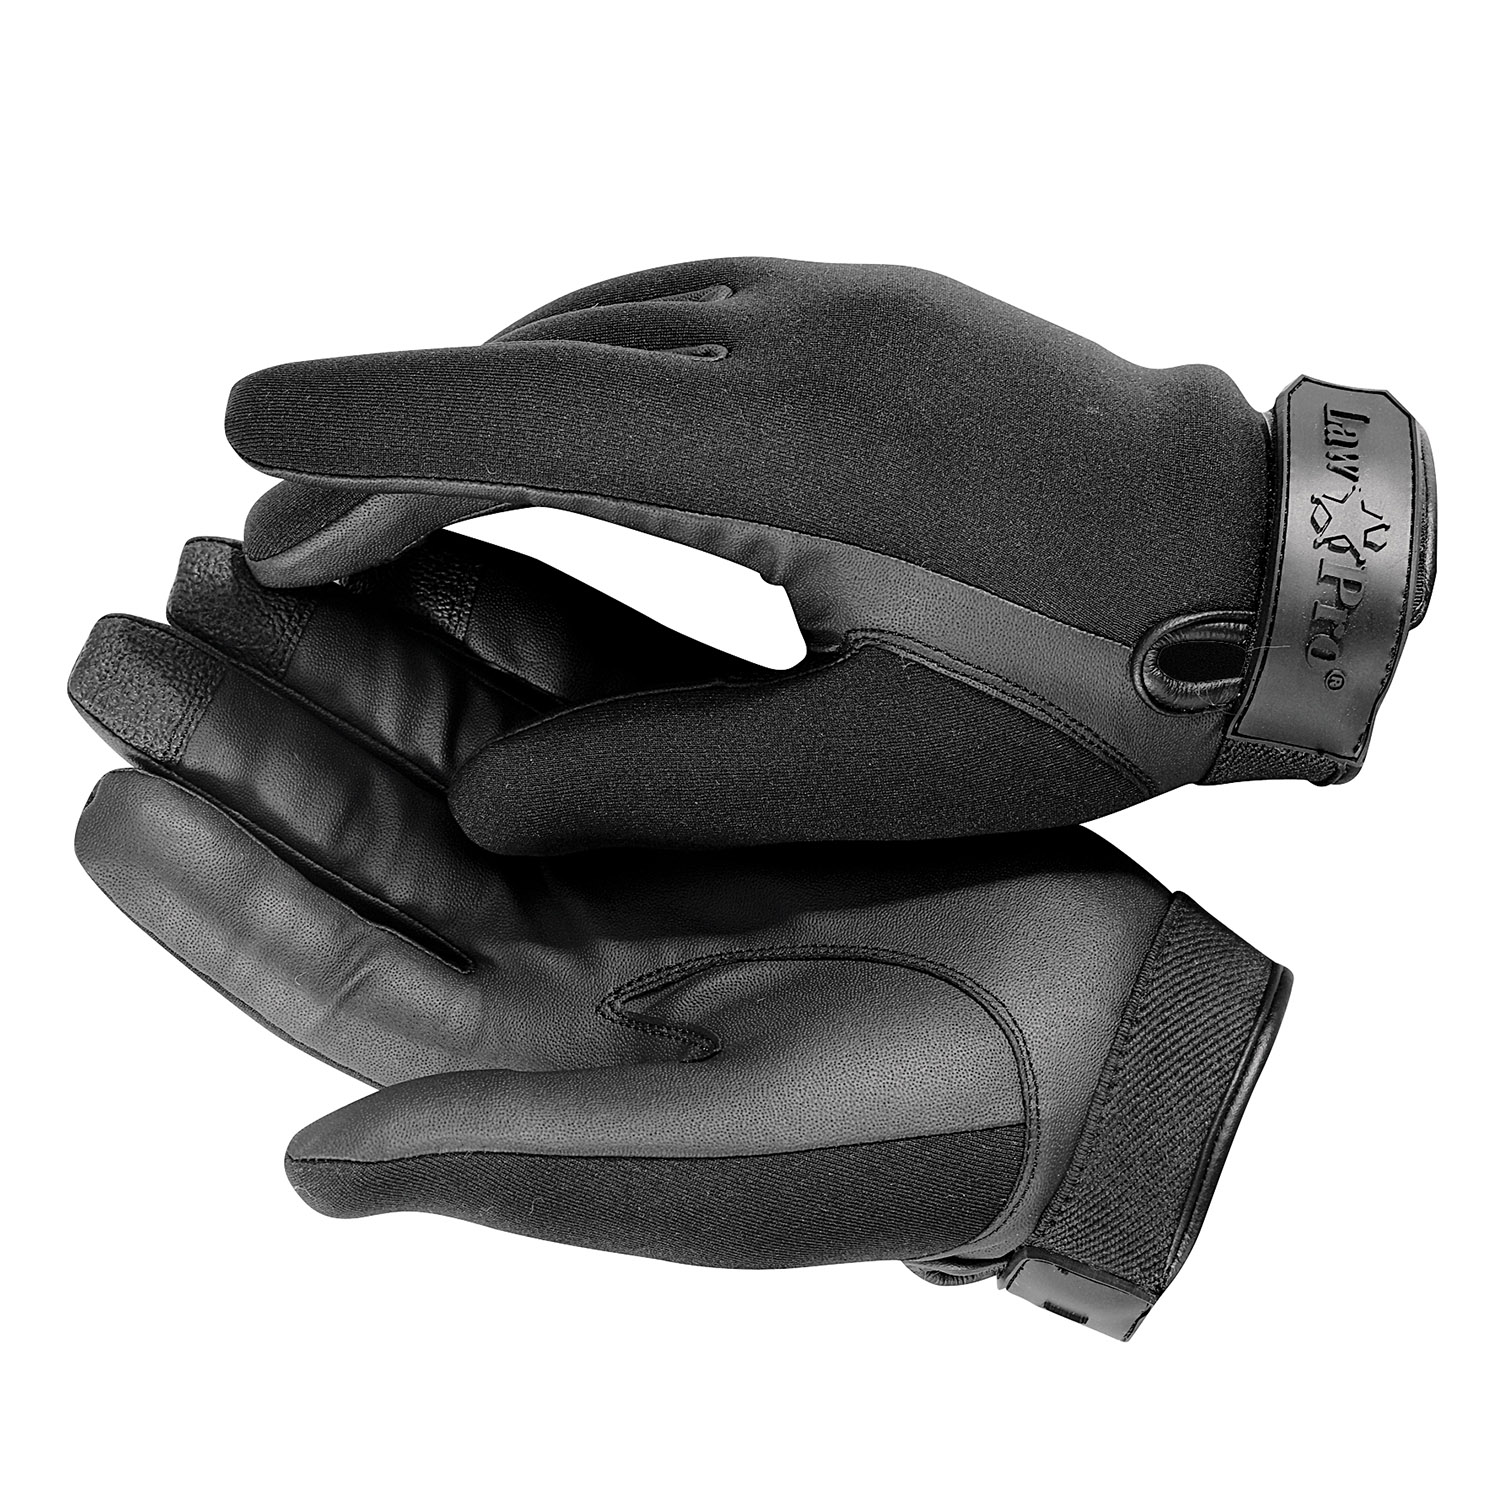 Black leather uniform gloves - Lawpro Neoprene Cutresistant Uniform Gloves